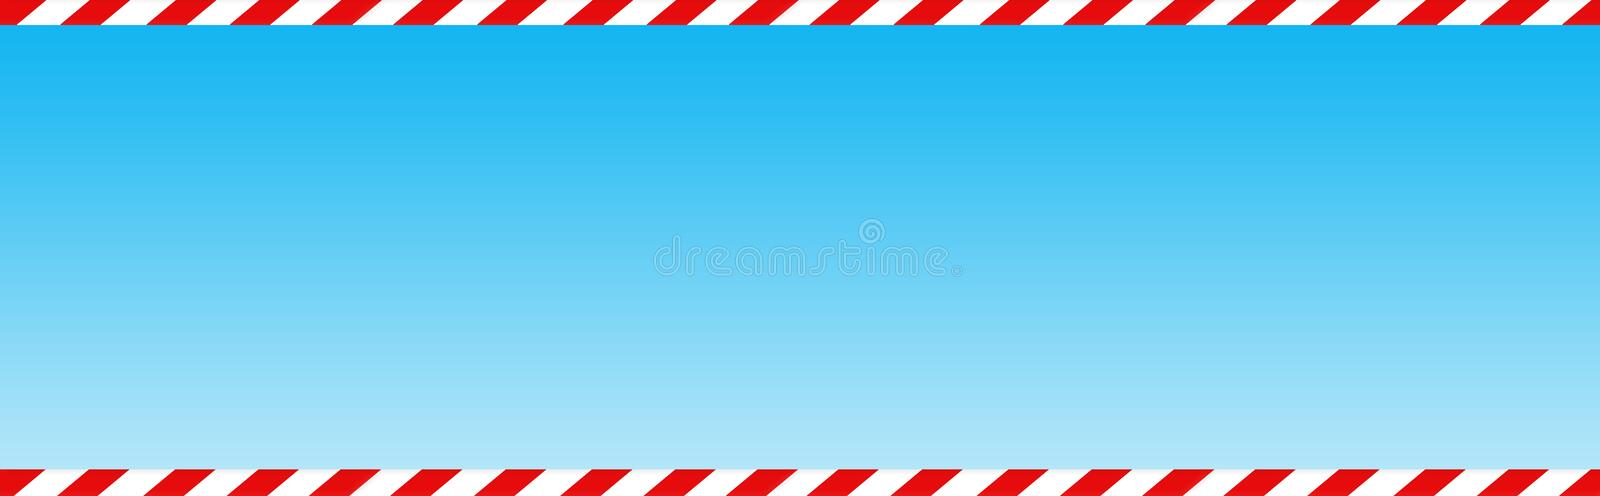 Candy cane web header / banner royalty free stock photography